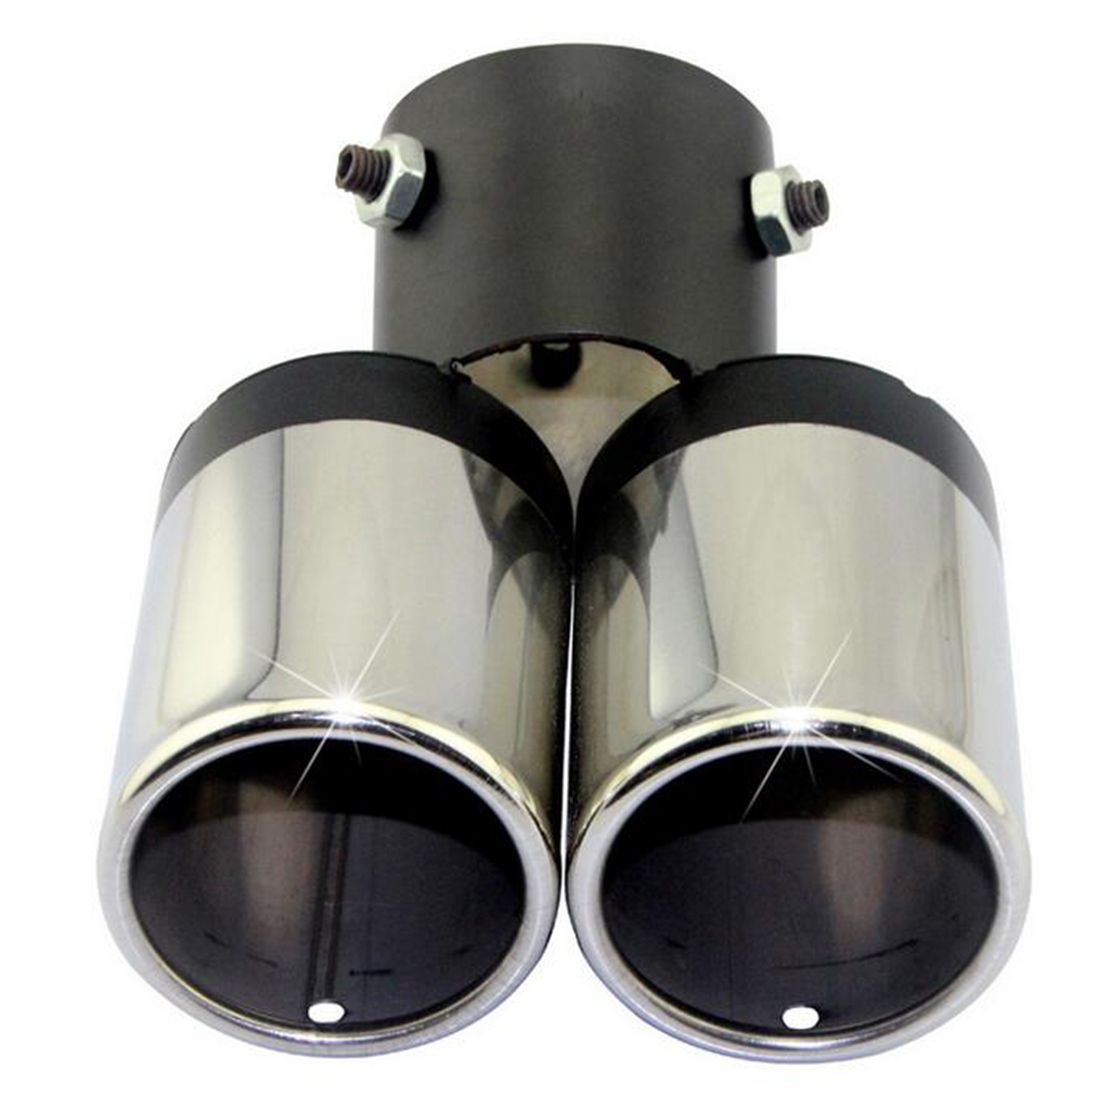 Dewtreetali black and silverStylish Car Vehicle Exhaust Muffler Steel Double Tail Pipe Car Accessory